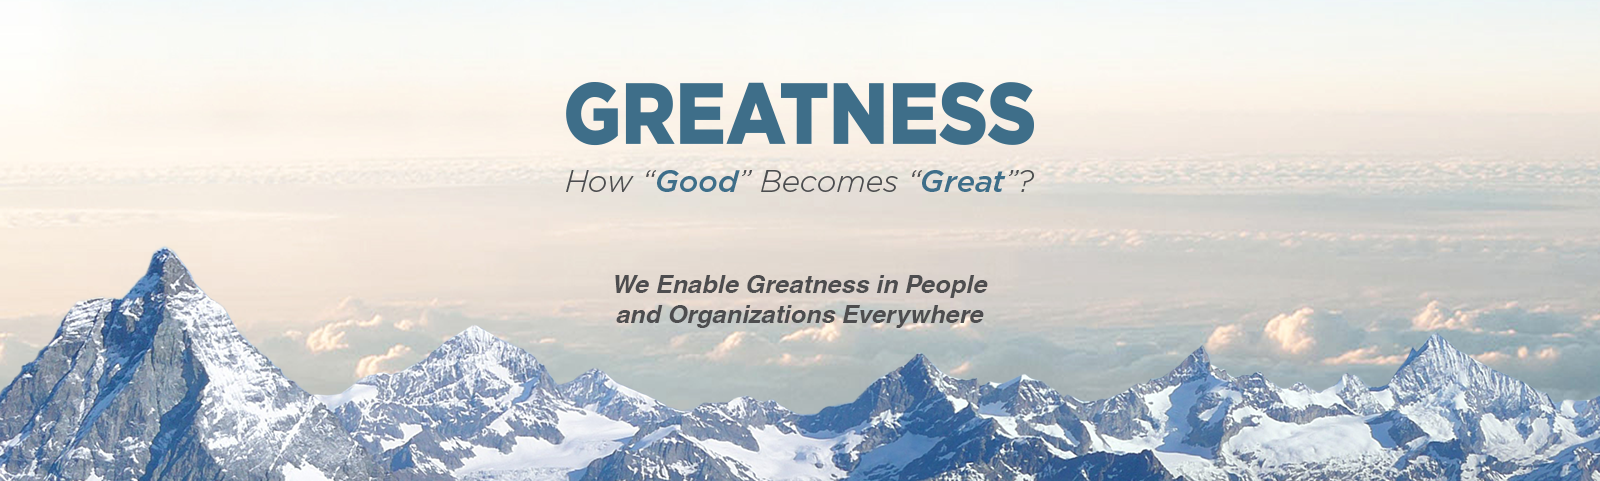 "How ""Good"" becomes ""Great""?"